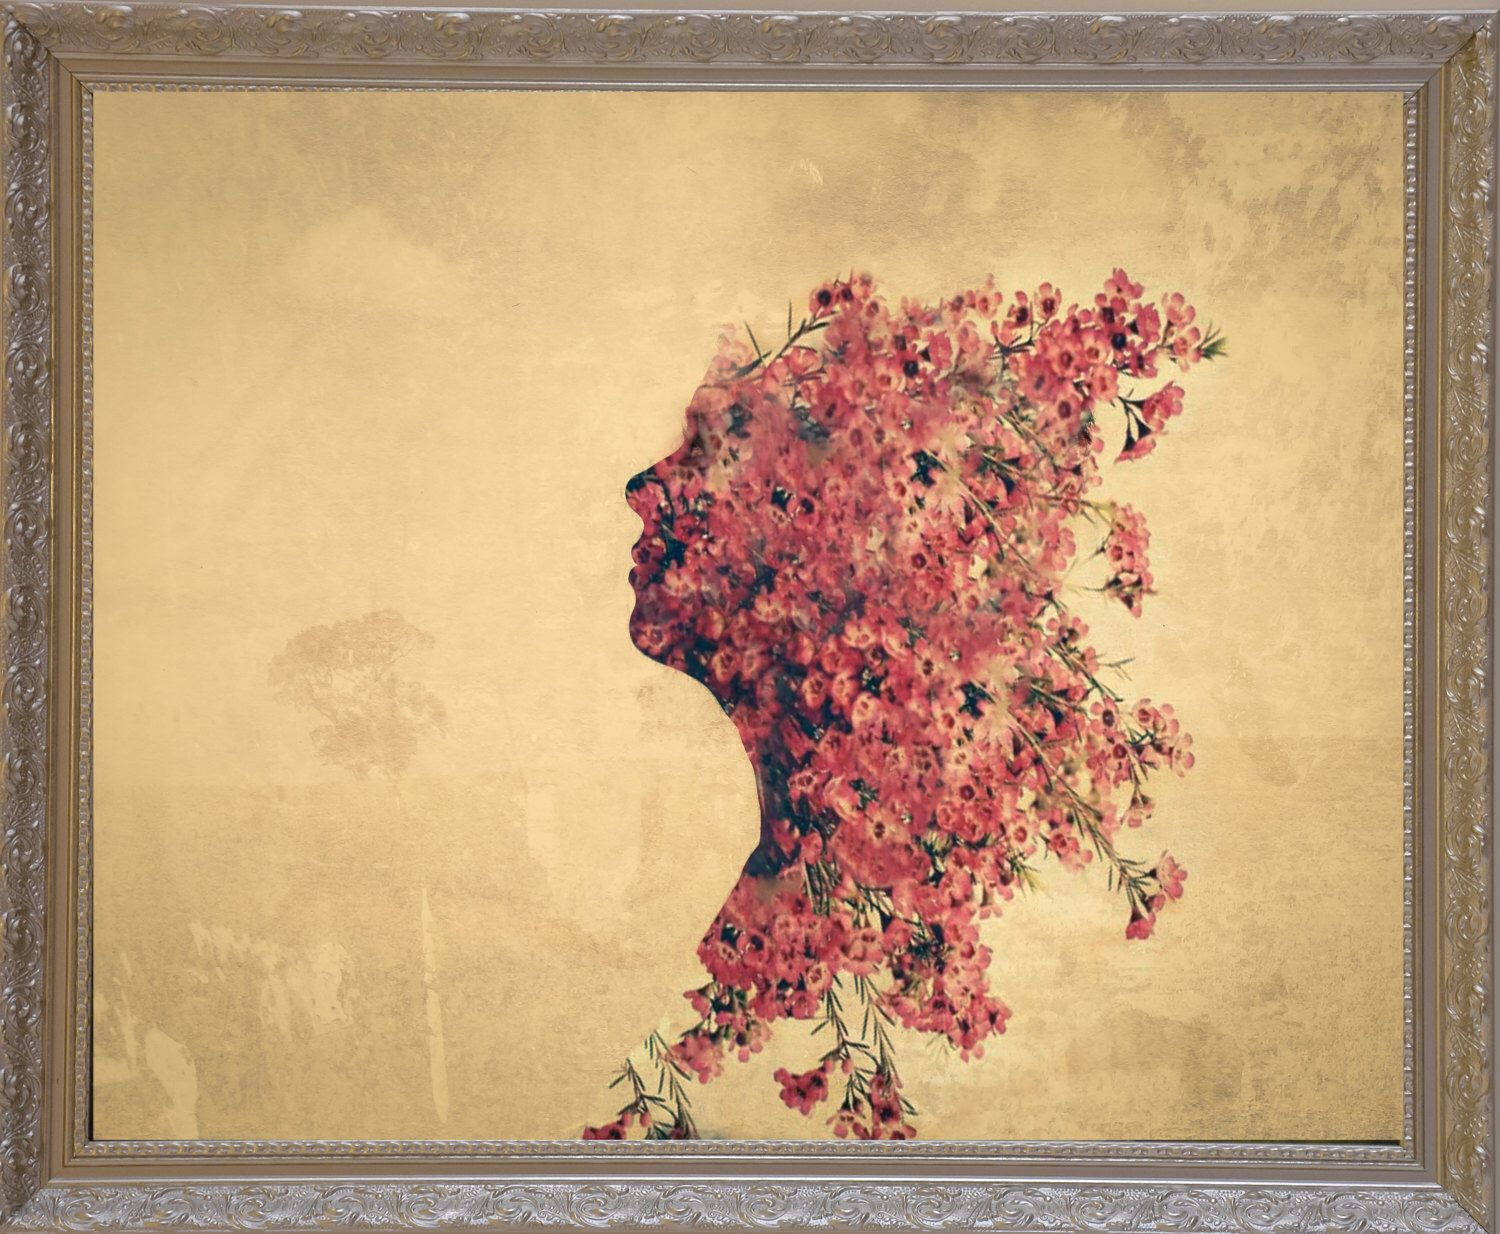 Abstract flower wall art, Double exposure poster print, 20 x 16 ...